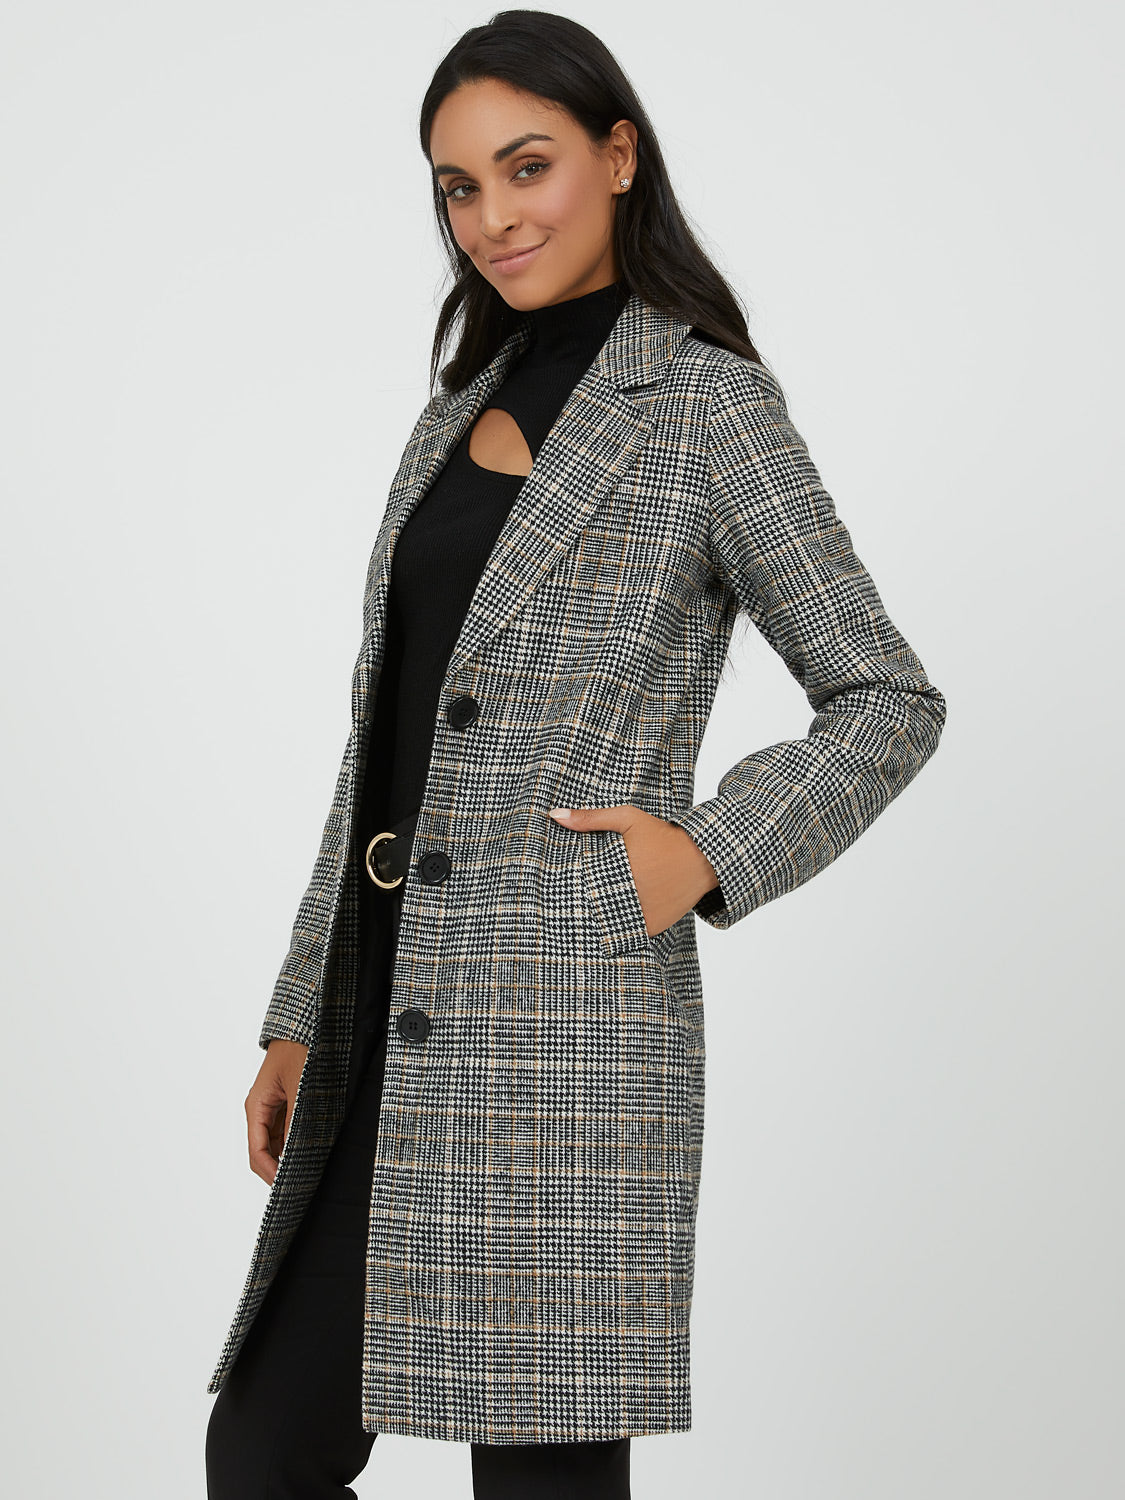 Menswear-Style Plaid Coat